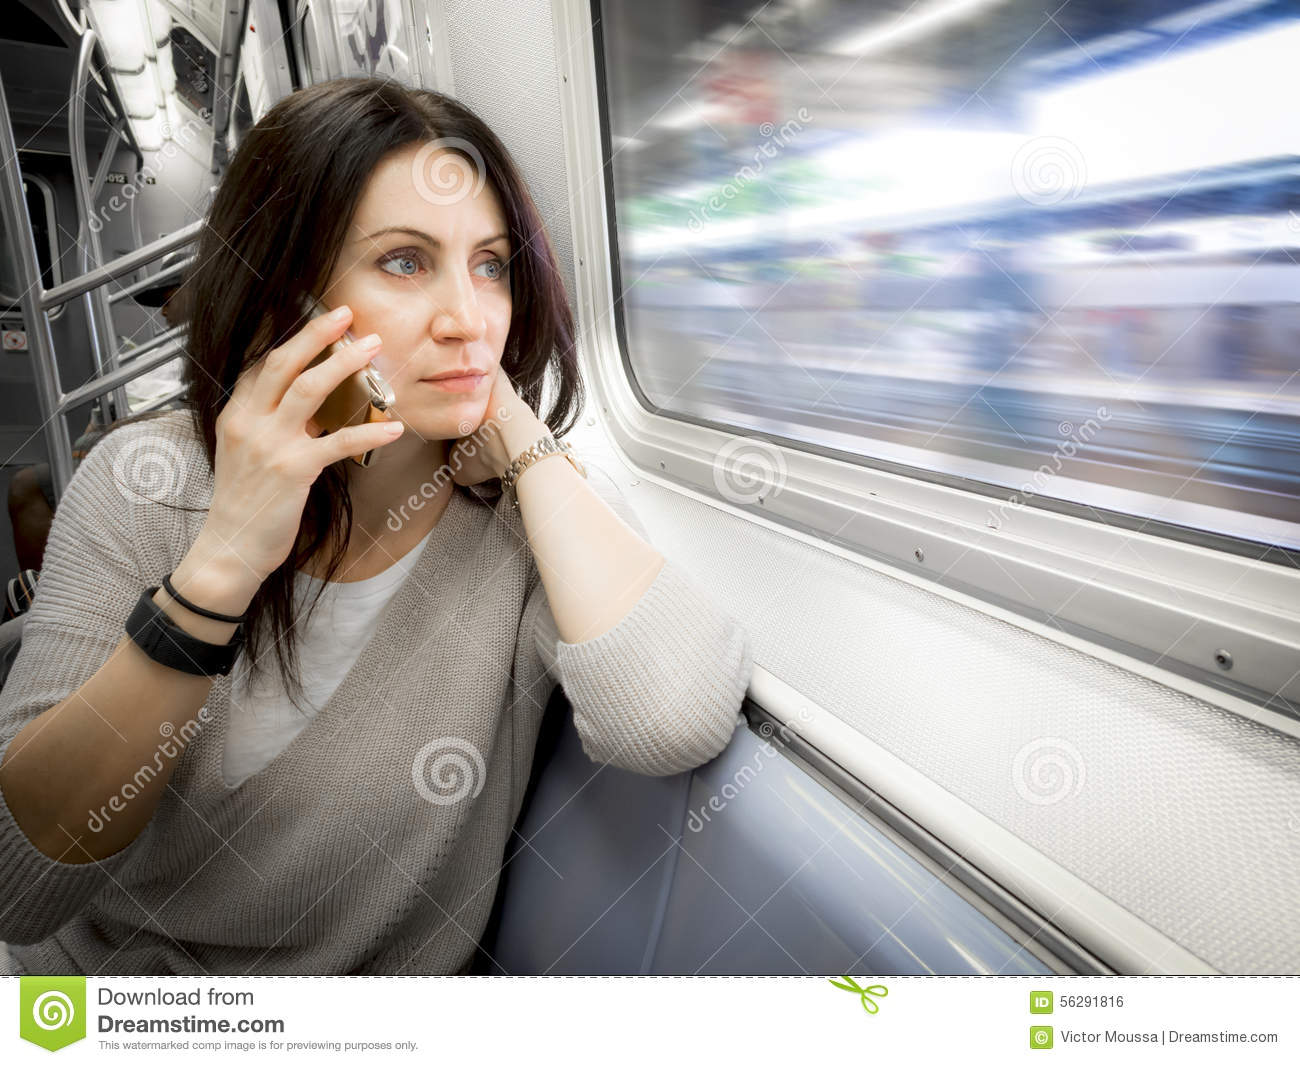 Woman in her 30s is riding the subway ans looking out the window